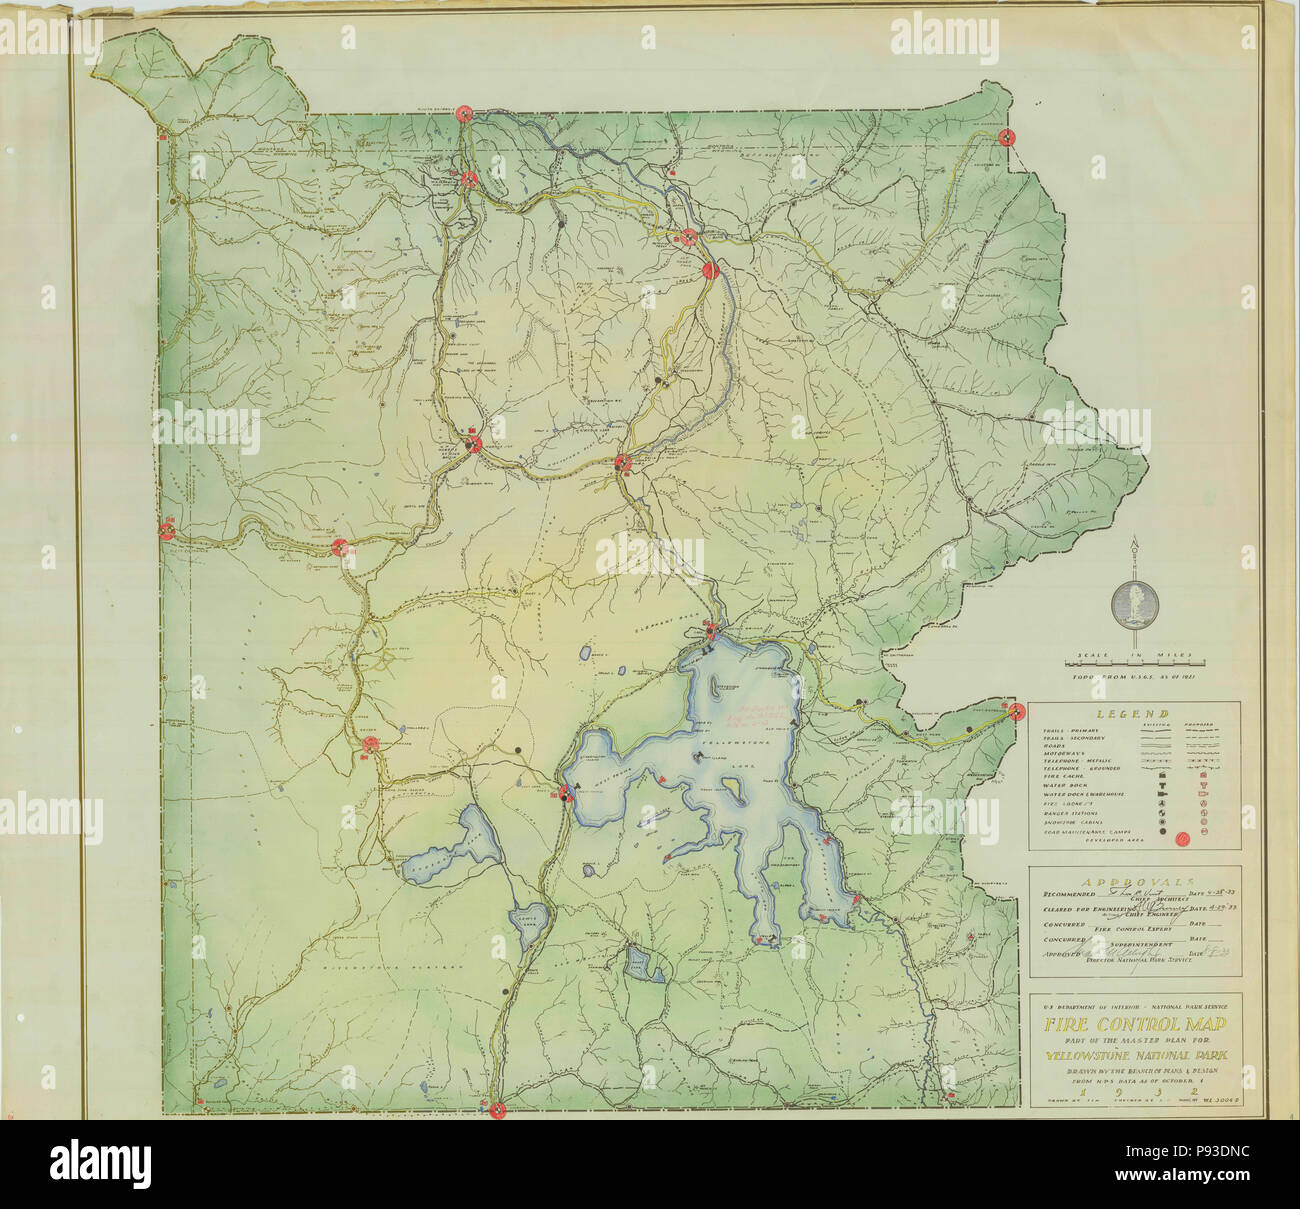 1932 Fire Control Map Yellowstone National Park Stock Photo ...